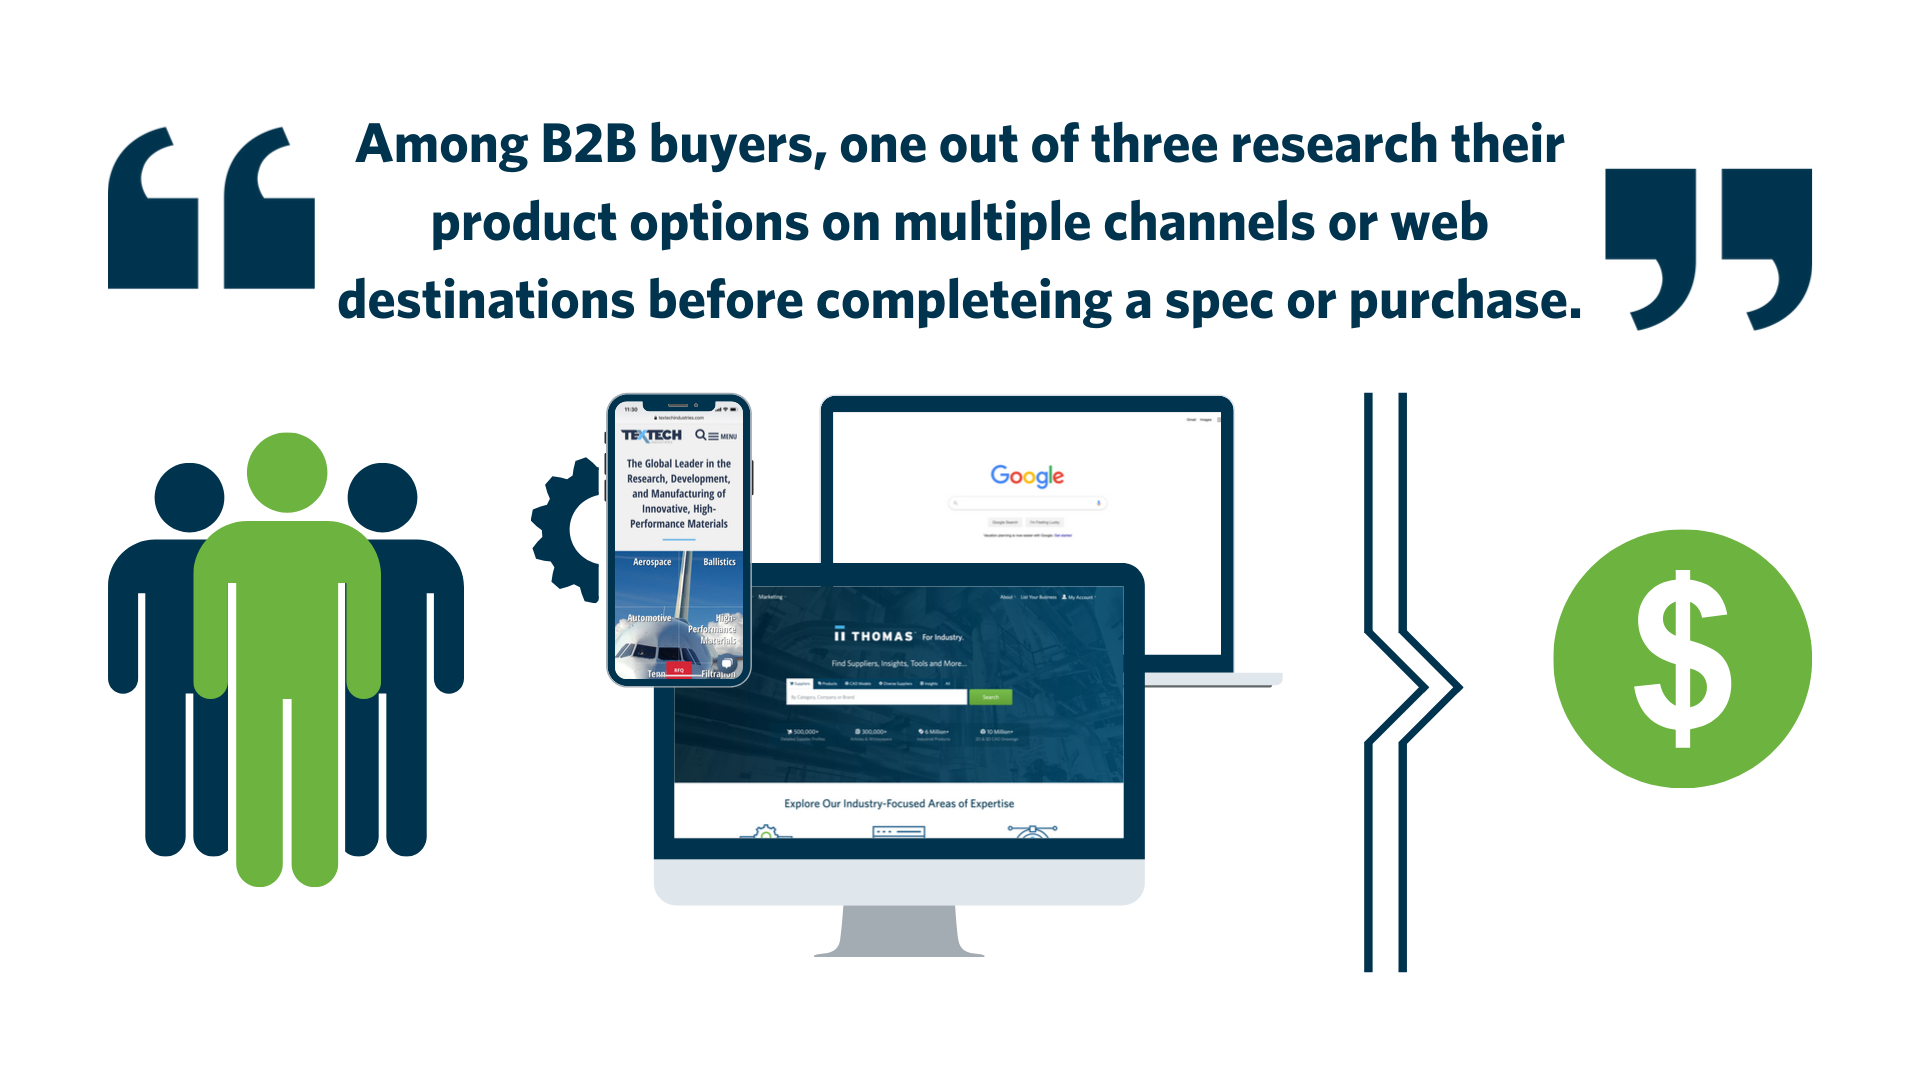 Among B2B buyers, one out of three research their product options on multiple channels or web destinations before completeing a spec or purchase. (1)